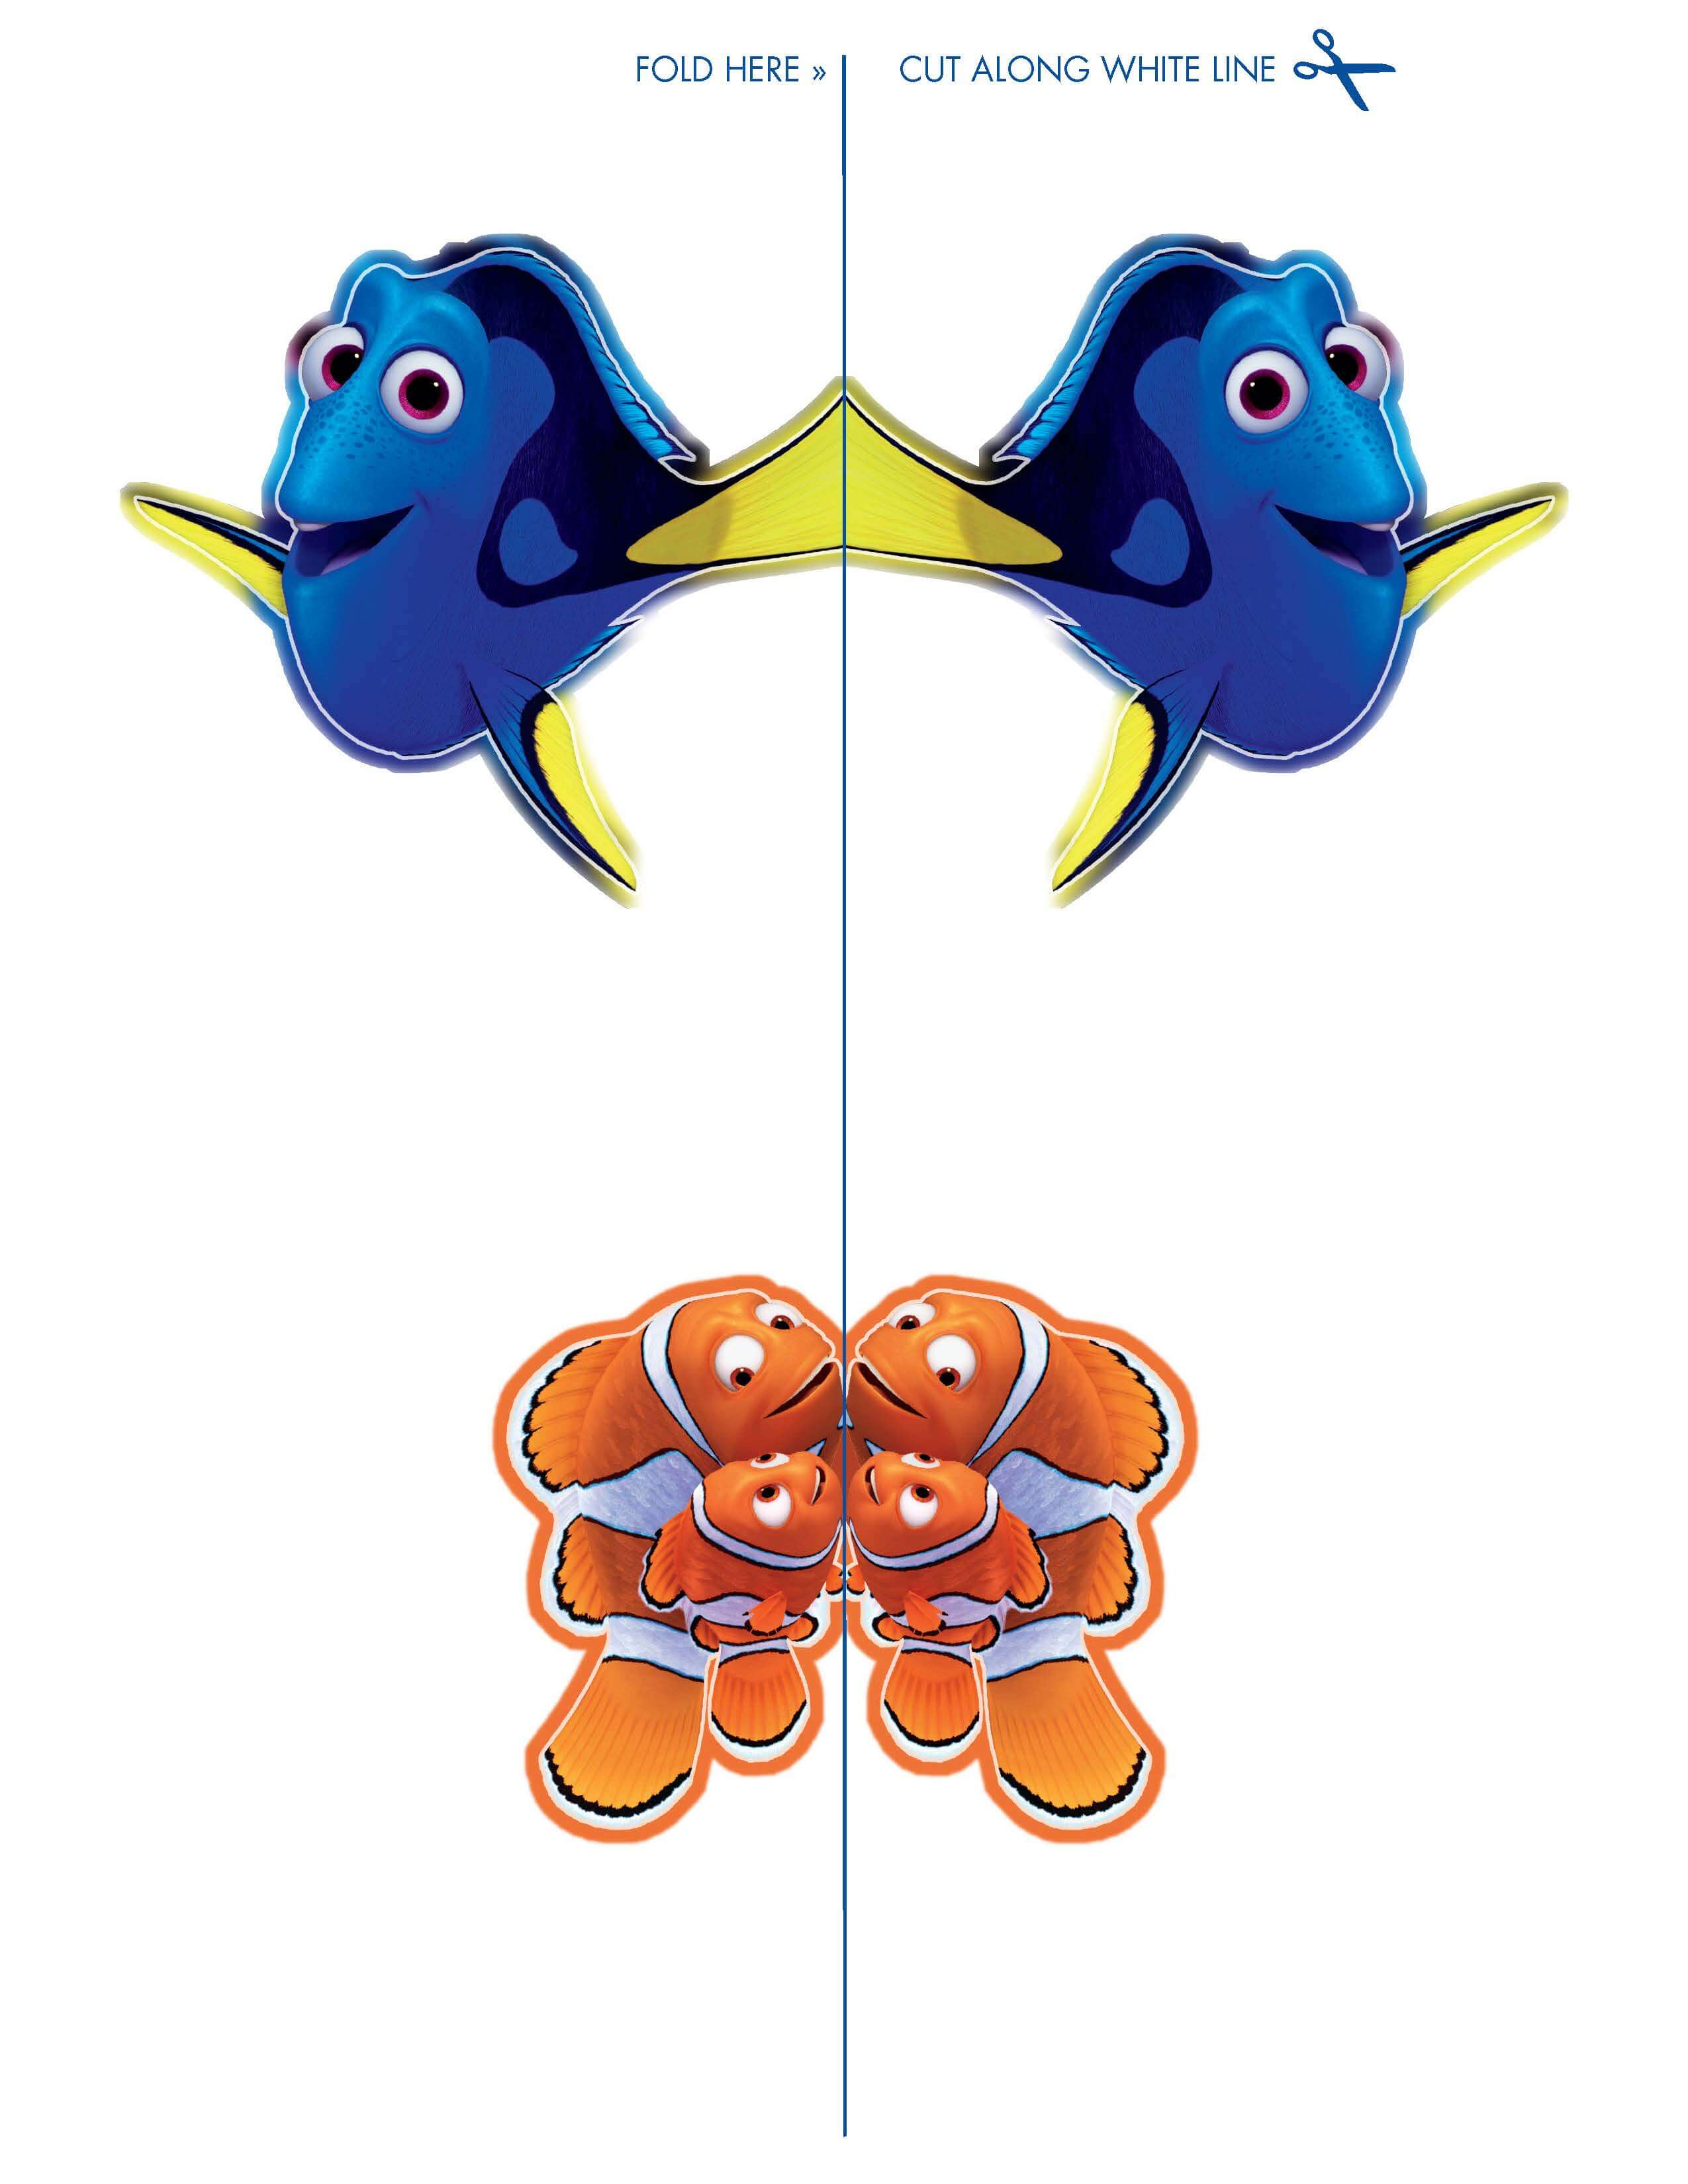 Finding dory coloring pages and coloring on pinterest finding nemo - Finding Dory Printable Mobile